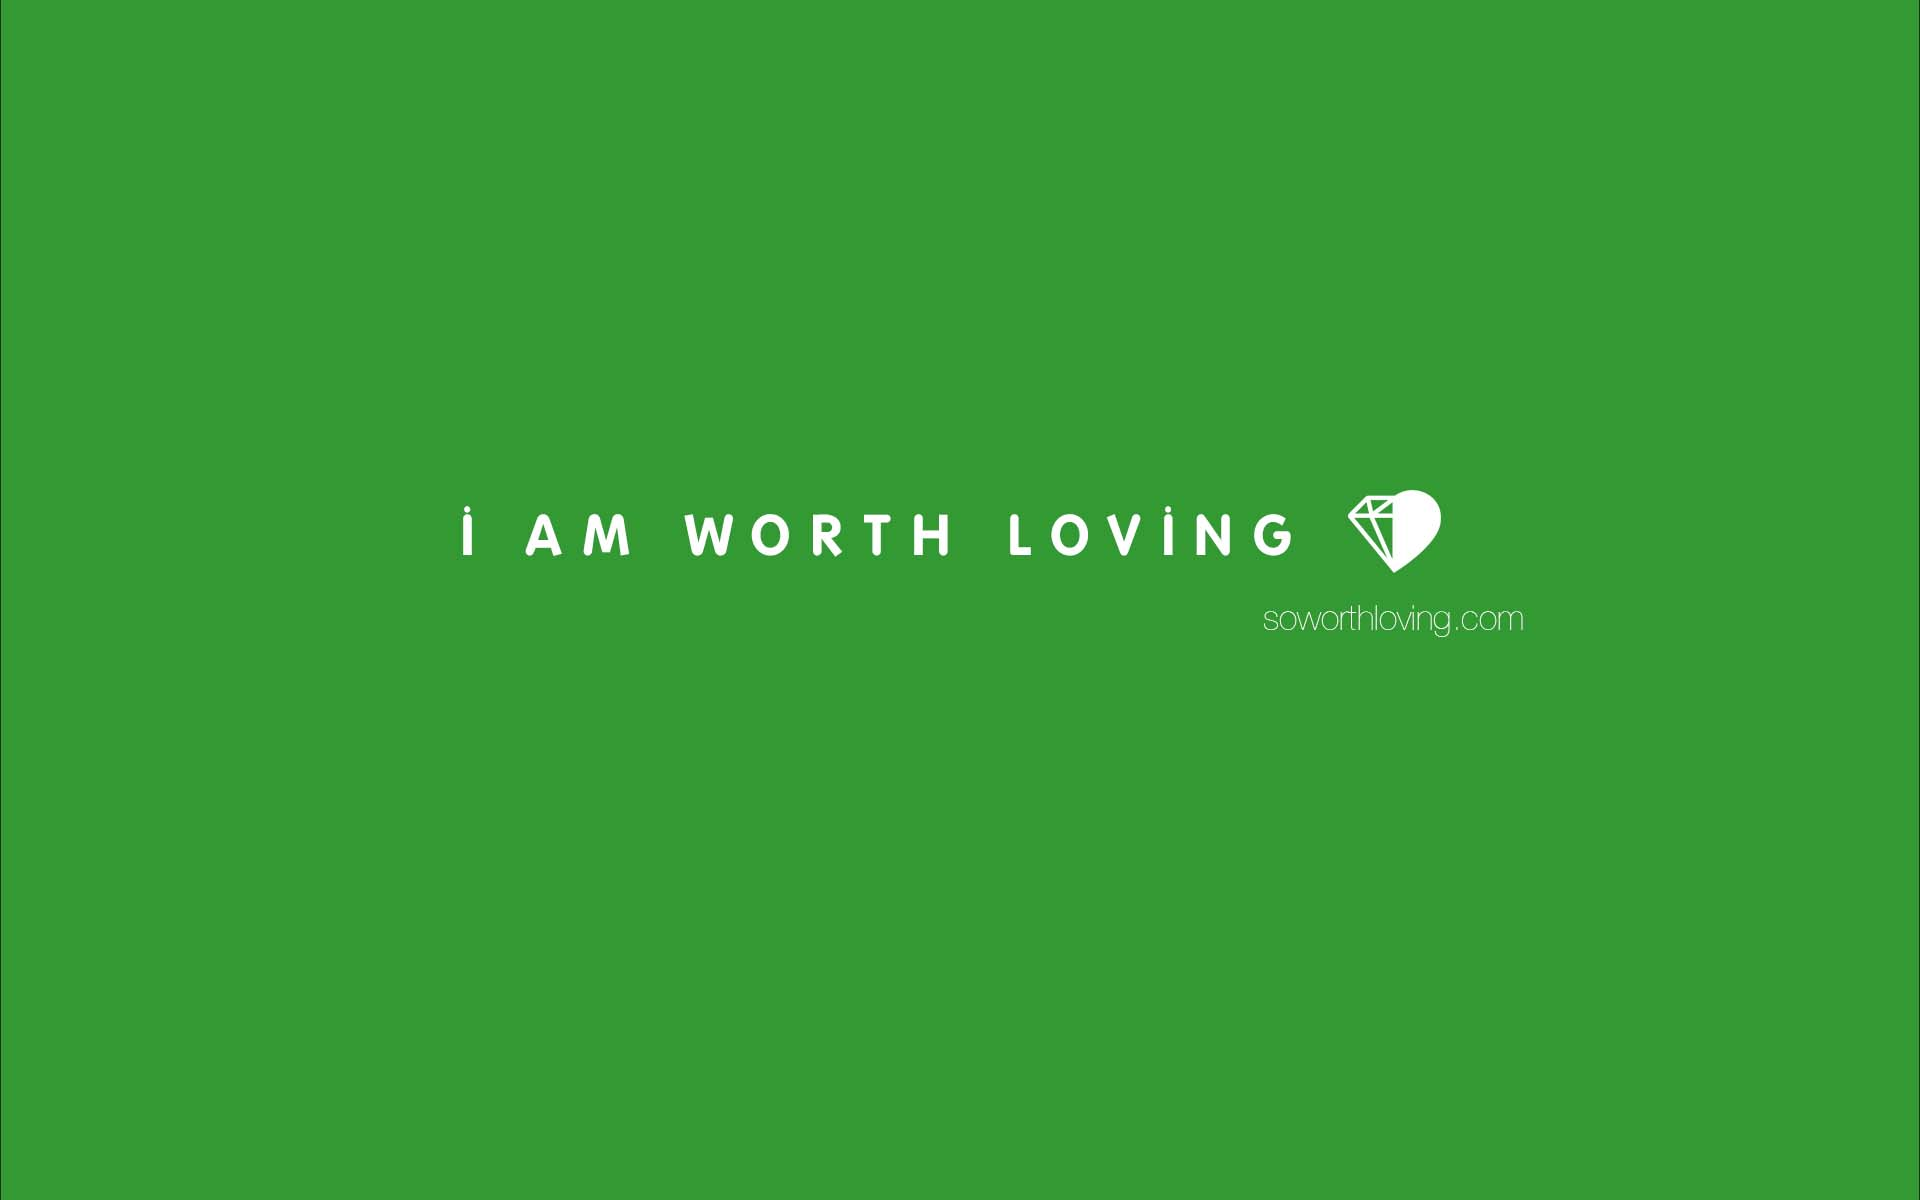 02yanasefukushi - I Am Worth Loving Wallpaper